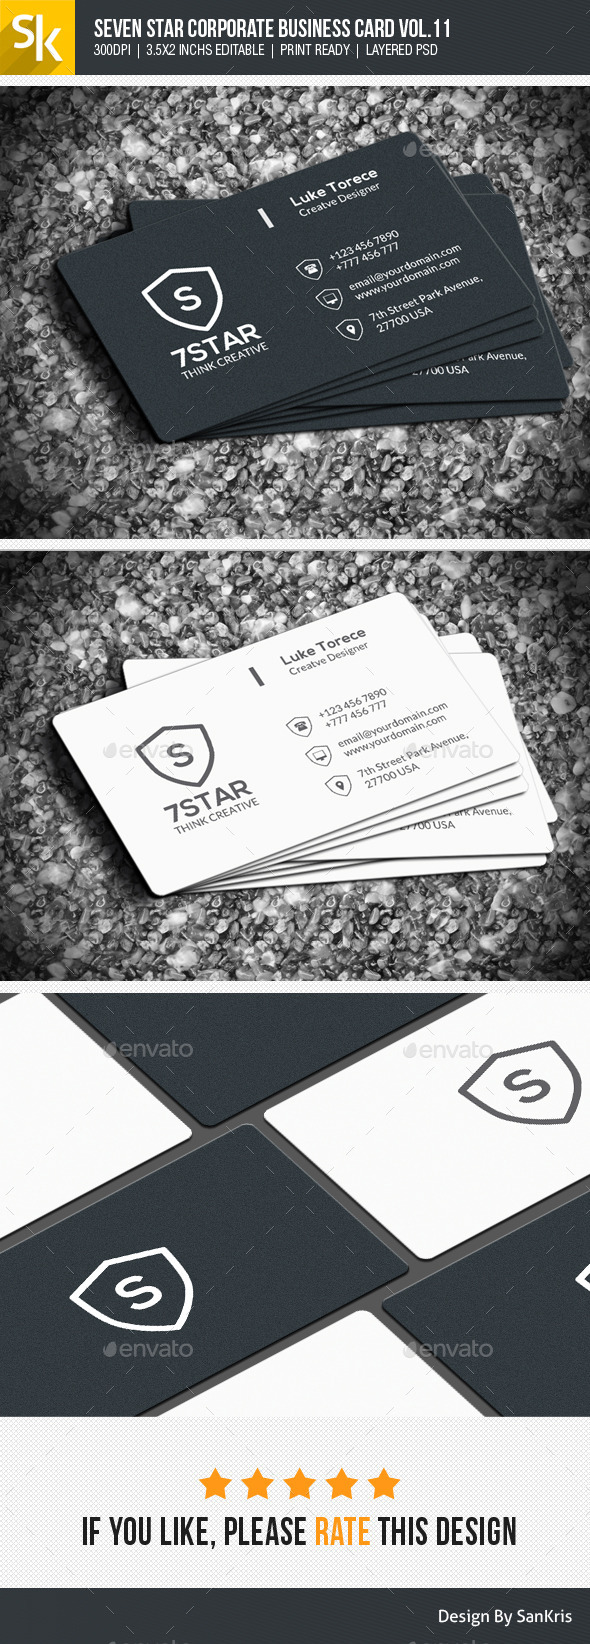 GraphicRiver Seven Star Corporate Business Card Vol.11 10990900